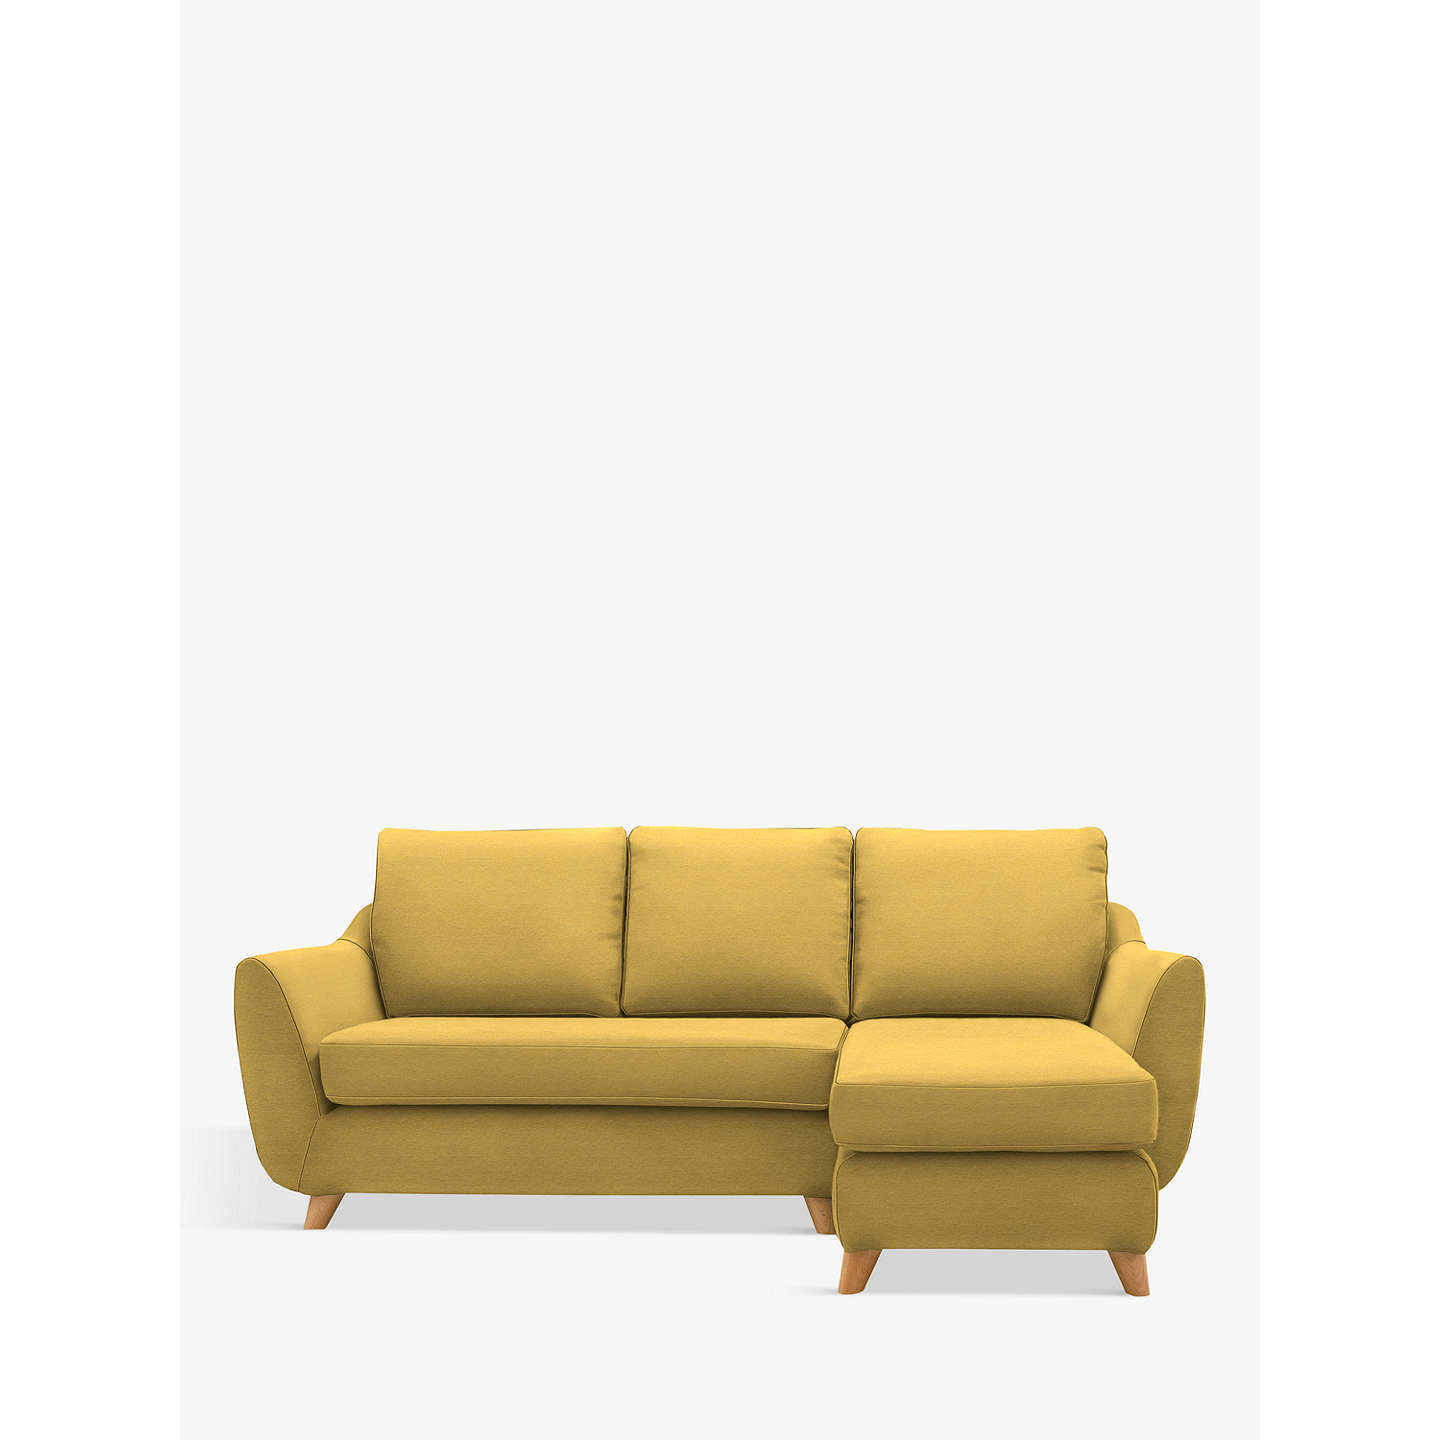 G Plan Vintage The Sixty Seven Rhf Chaise End Sofa Tonic Mustard Online At Johnlewis